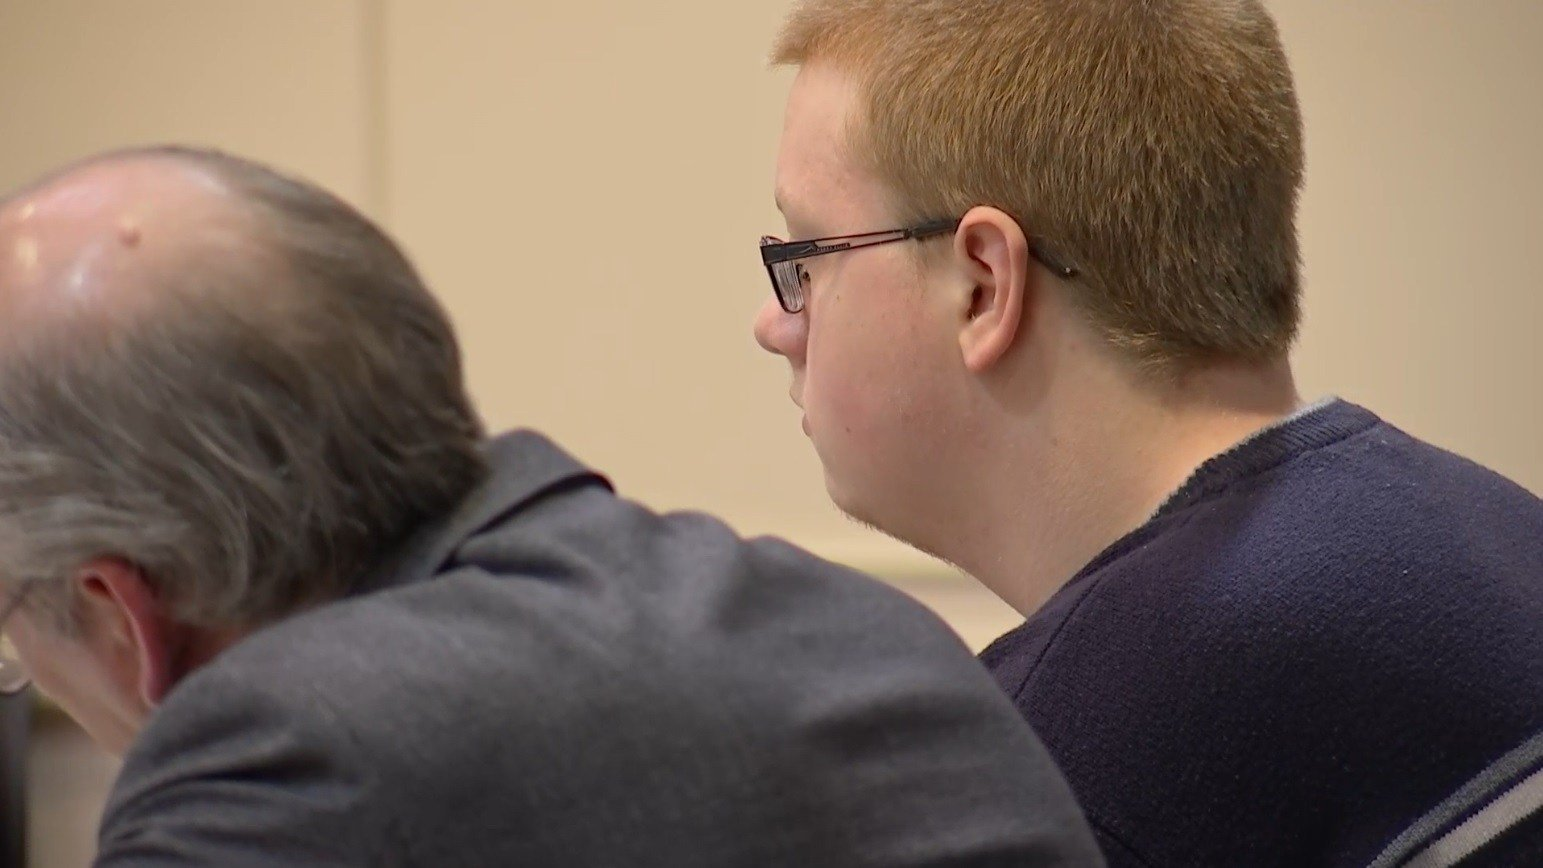 Accused Marshall County High School shooter Gabe Parker in court on March 12, 2018